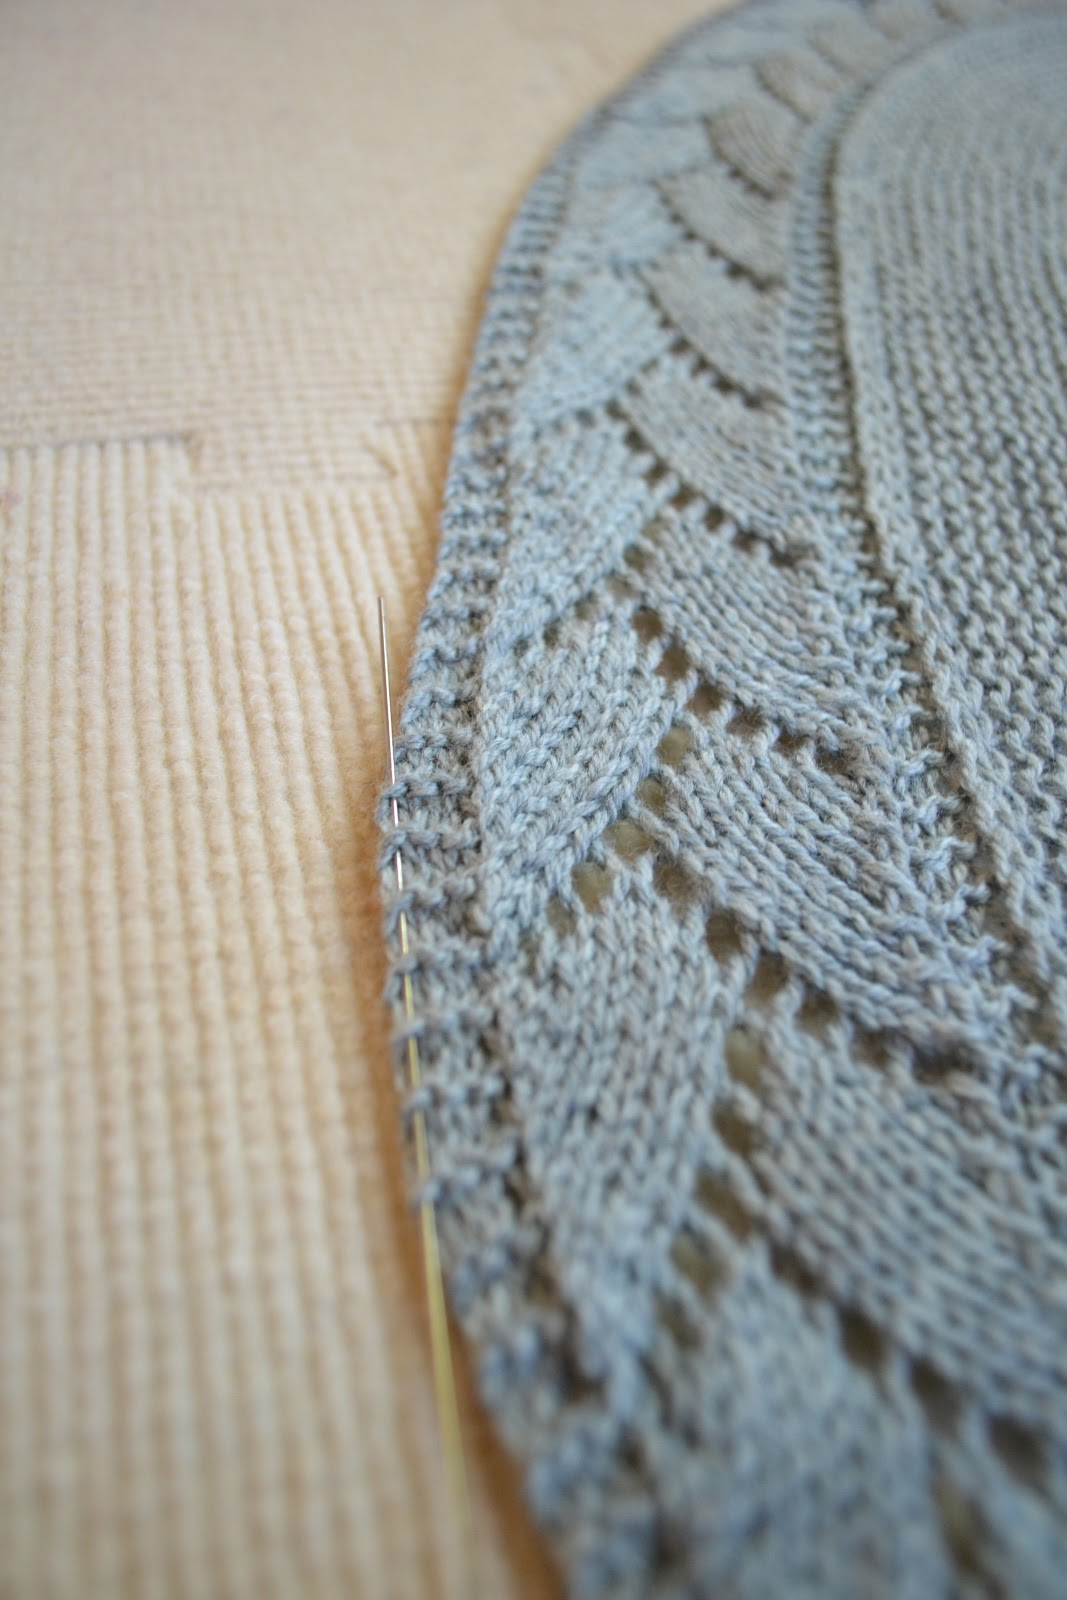 Susan B. Anderson: Washing Your Wool and Blocking